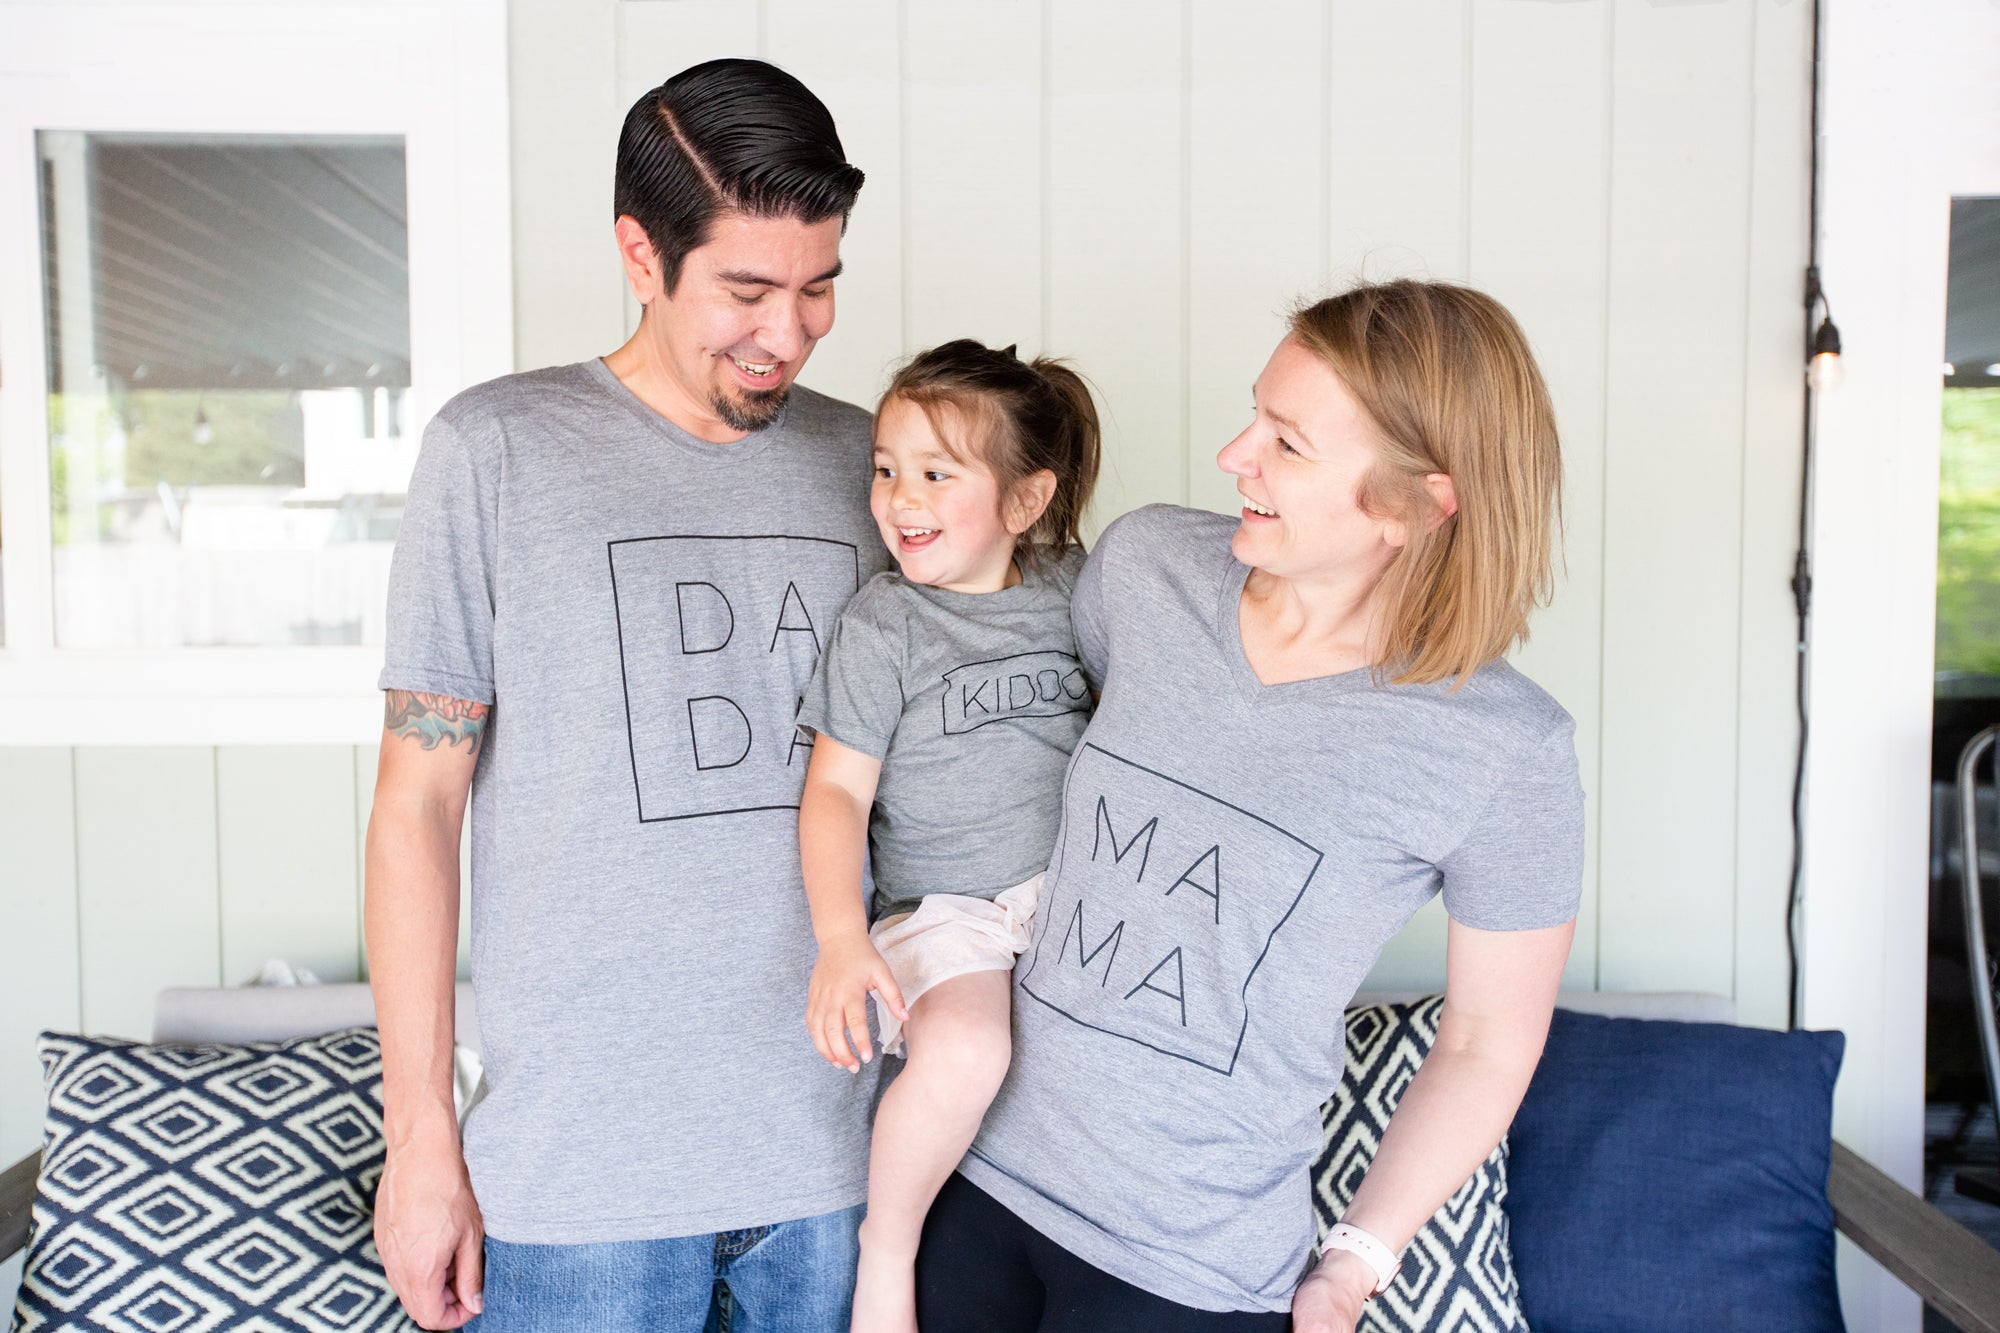 our happy family wearing shirts with Dada, Mama, and Kiddo printed in a modern font and square on grey matching shirts